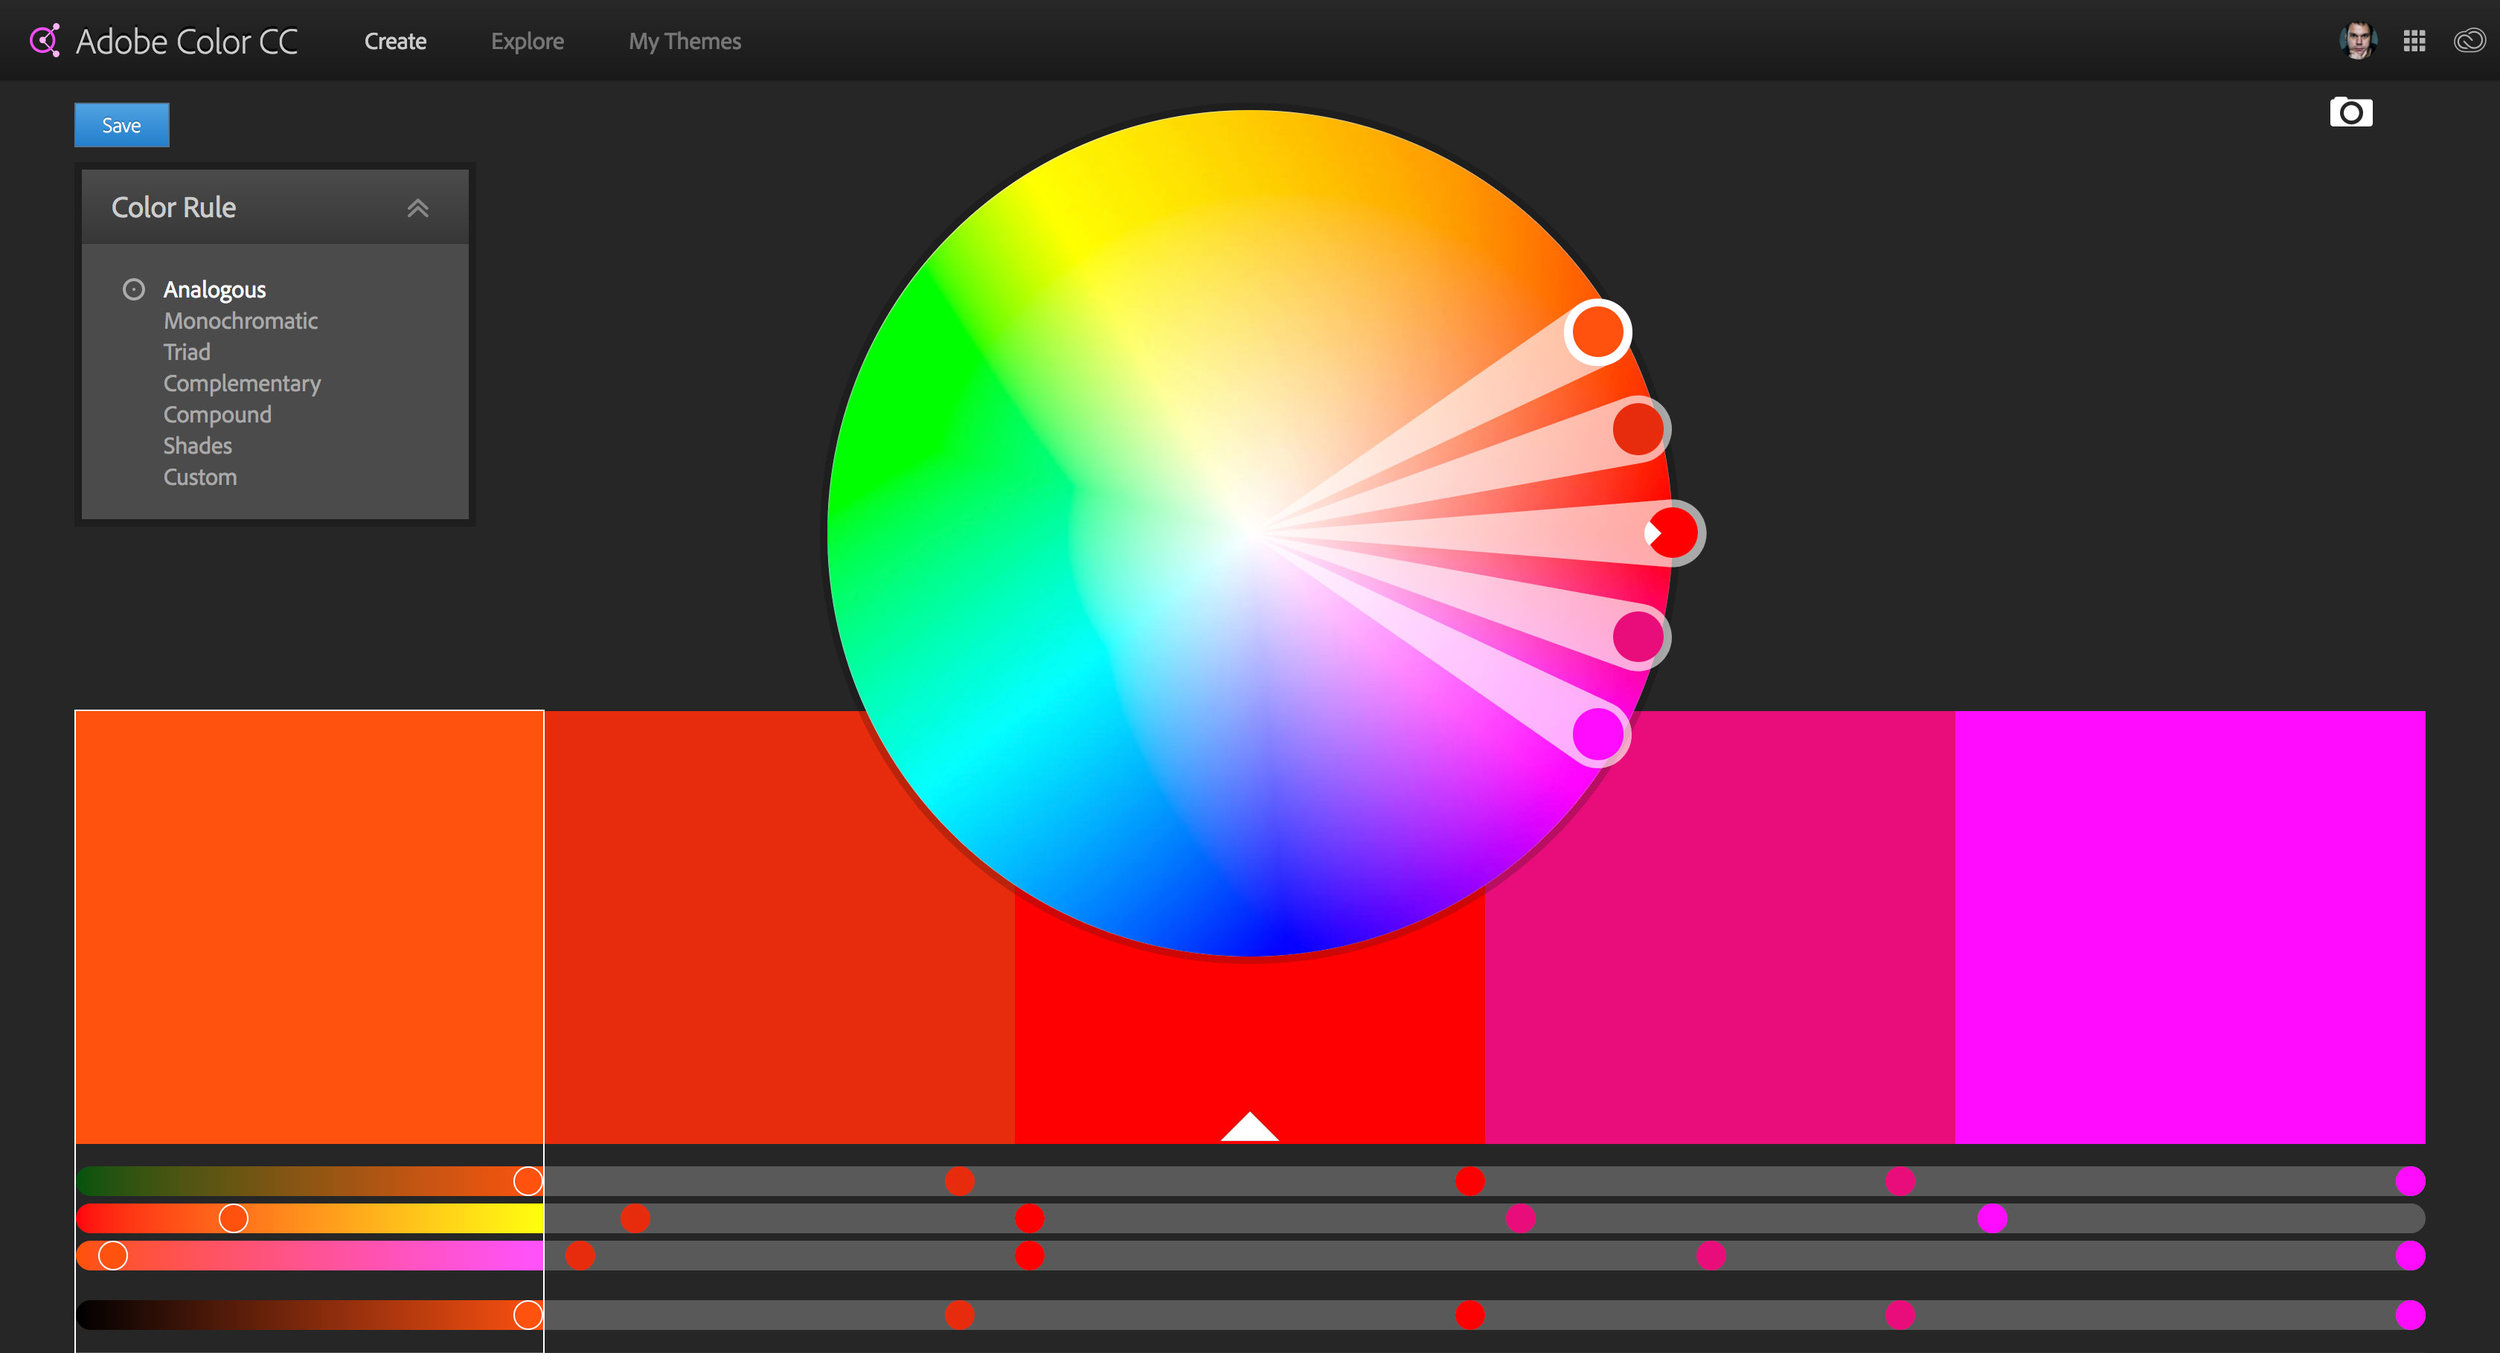 The Adobe Color CC user interface.